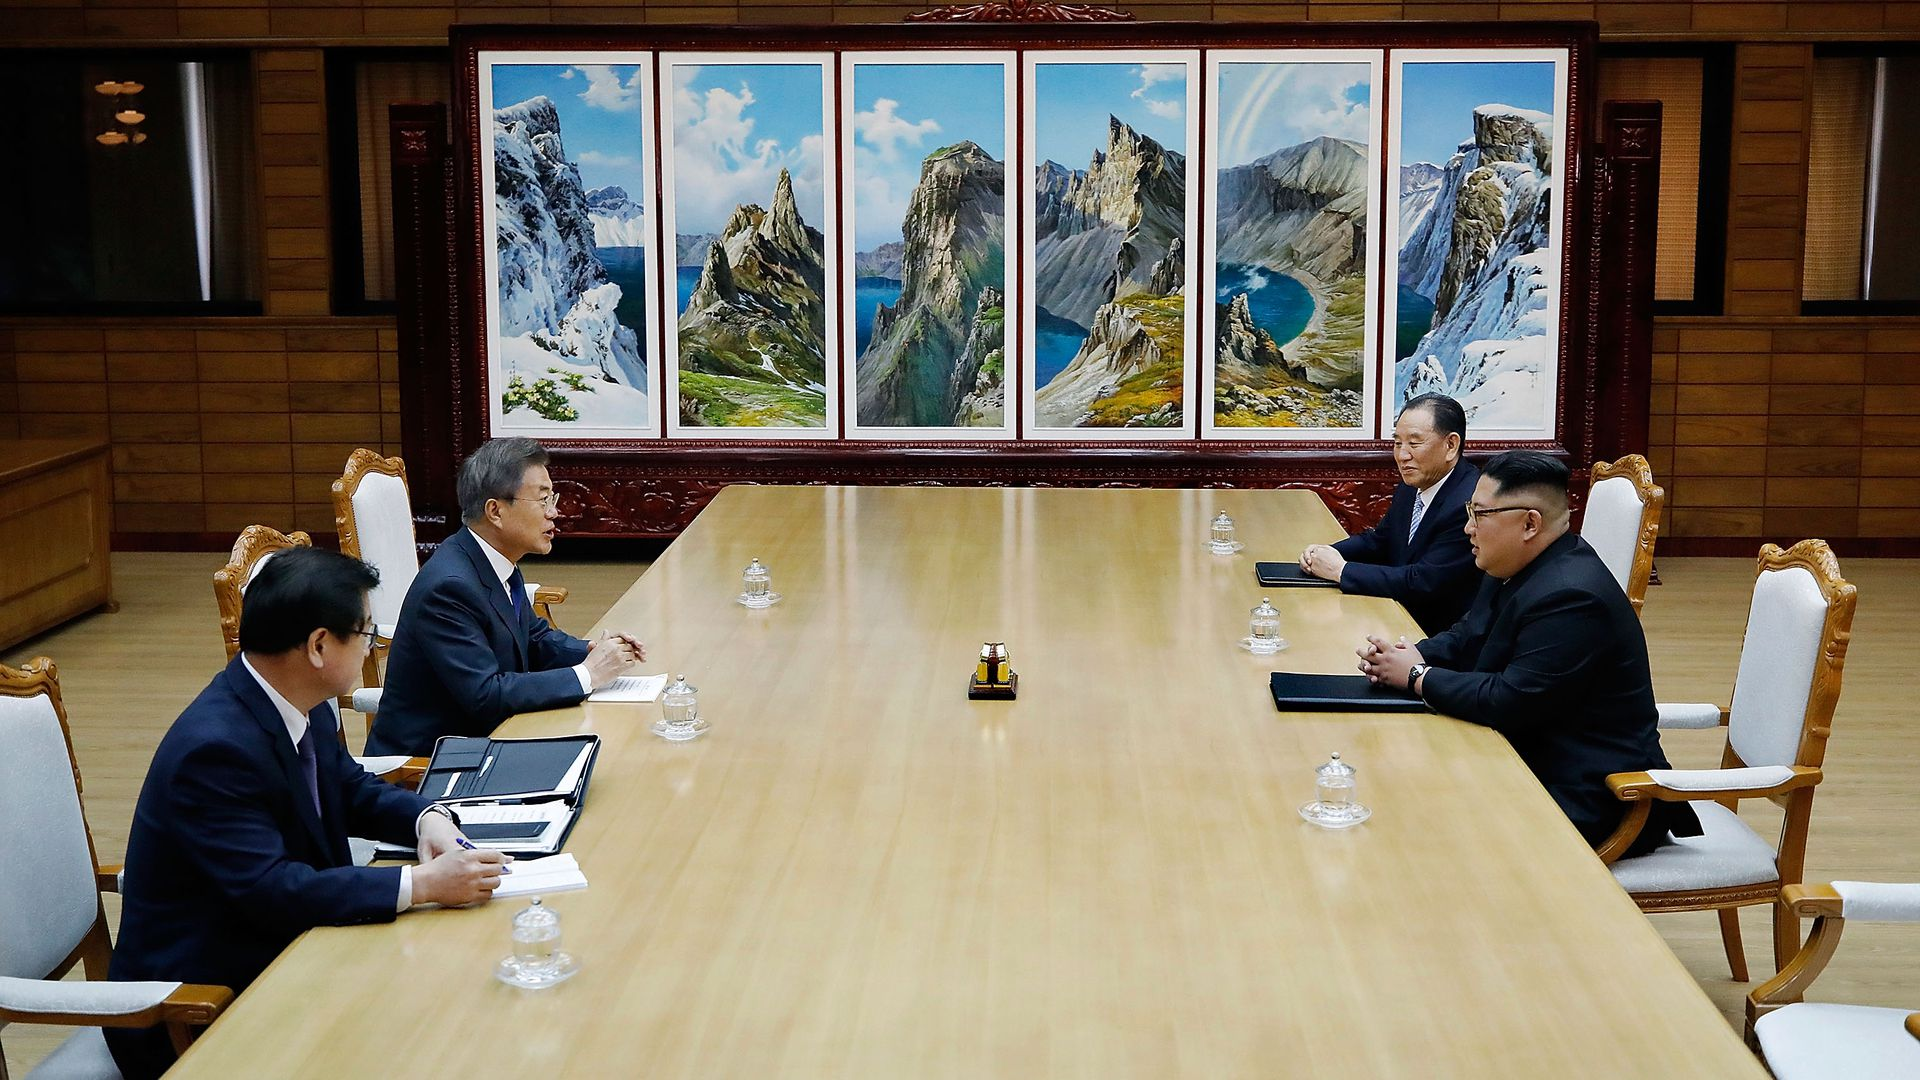 South Korean President Moon Jae-in (L) talks with North Korean leader Kim Jong-un (R) during their meeting on May 26, 2018 in Panmunjom, North Korea.